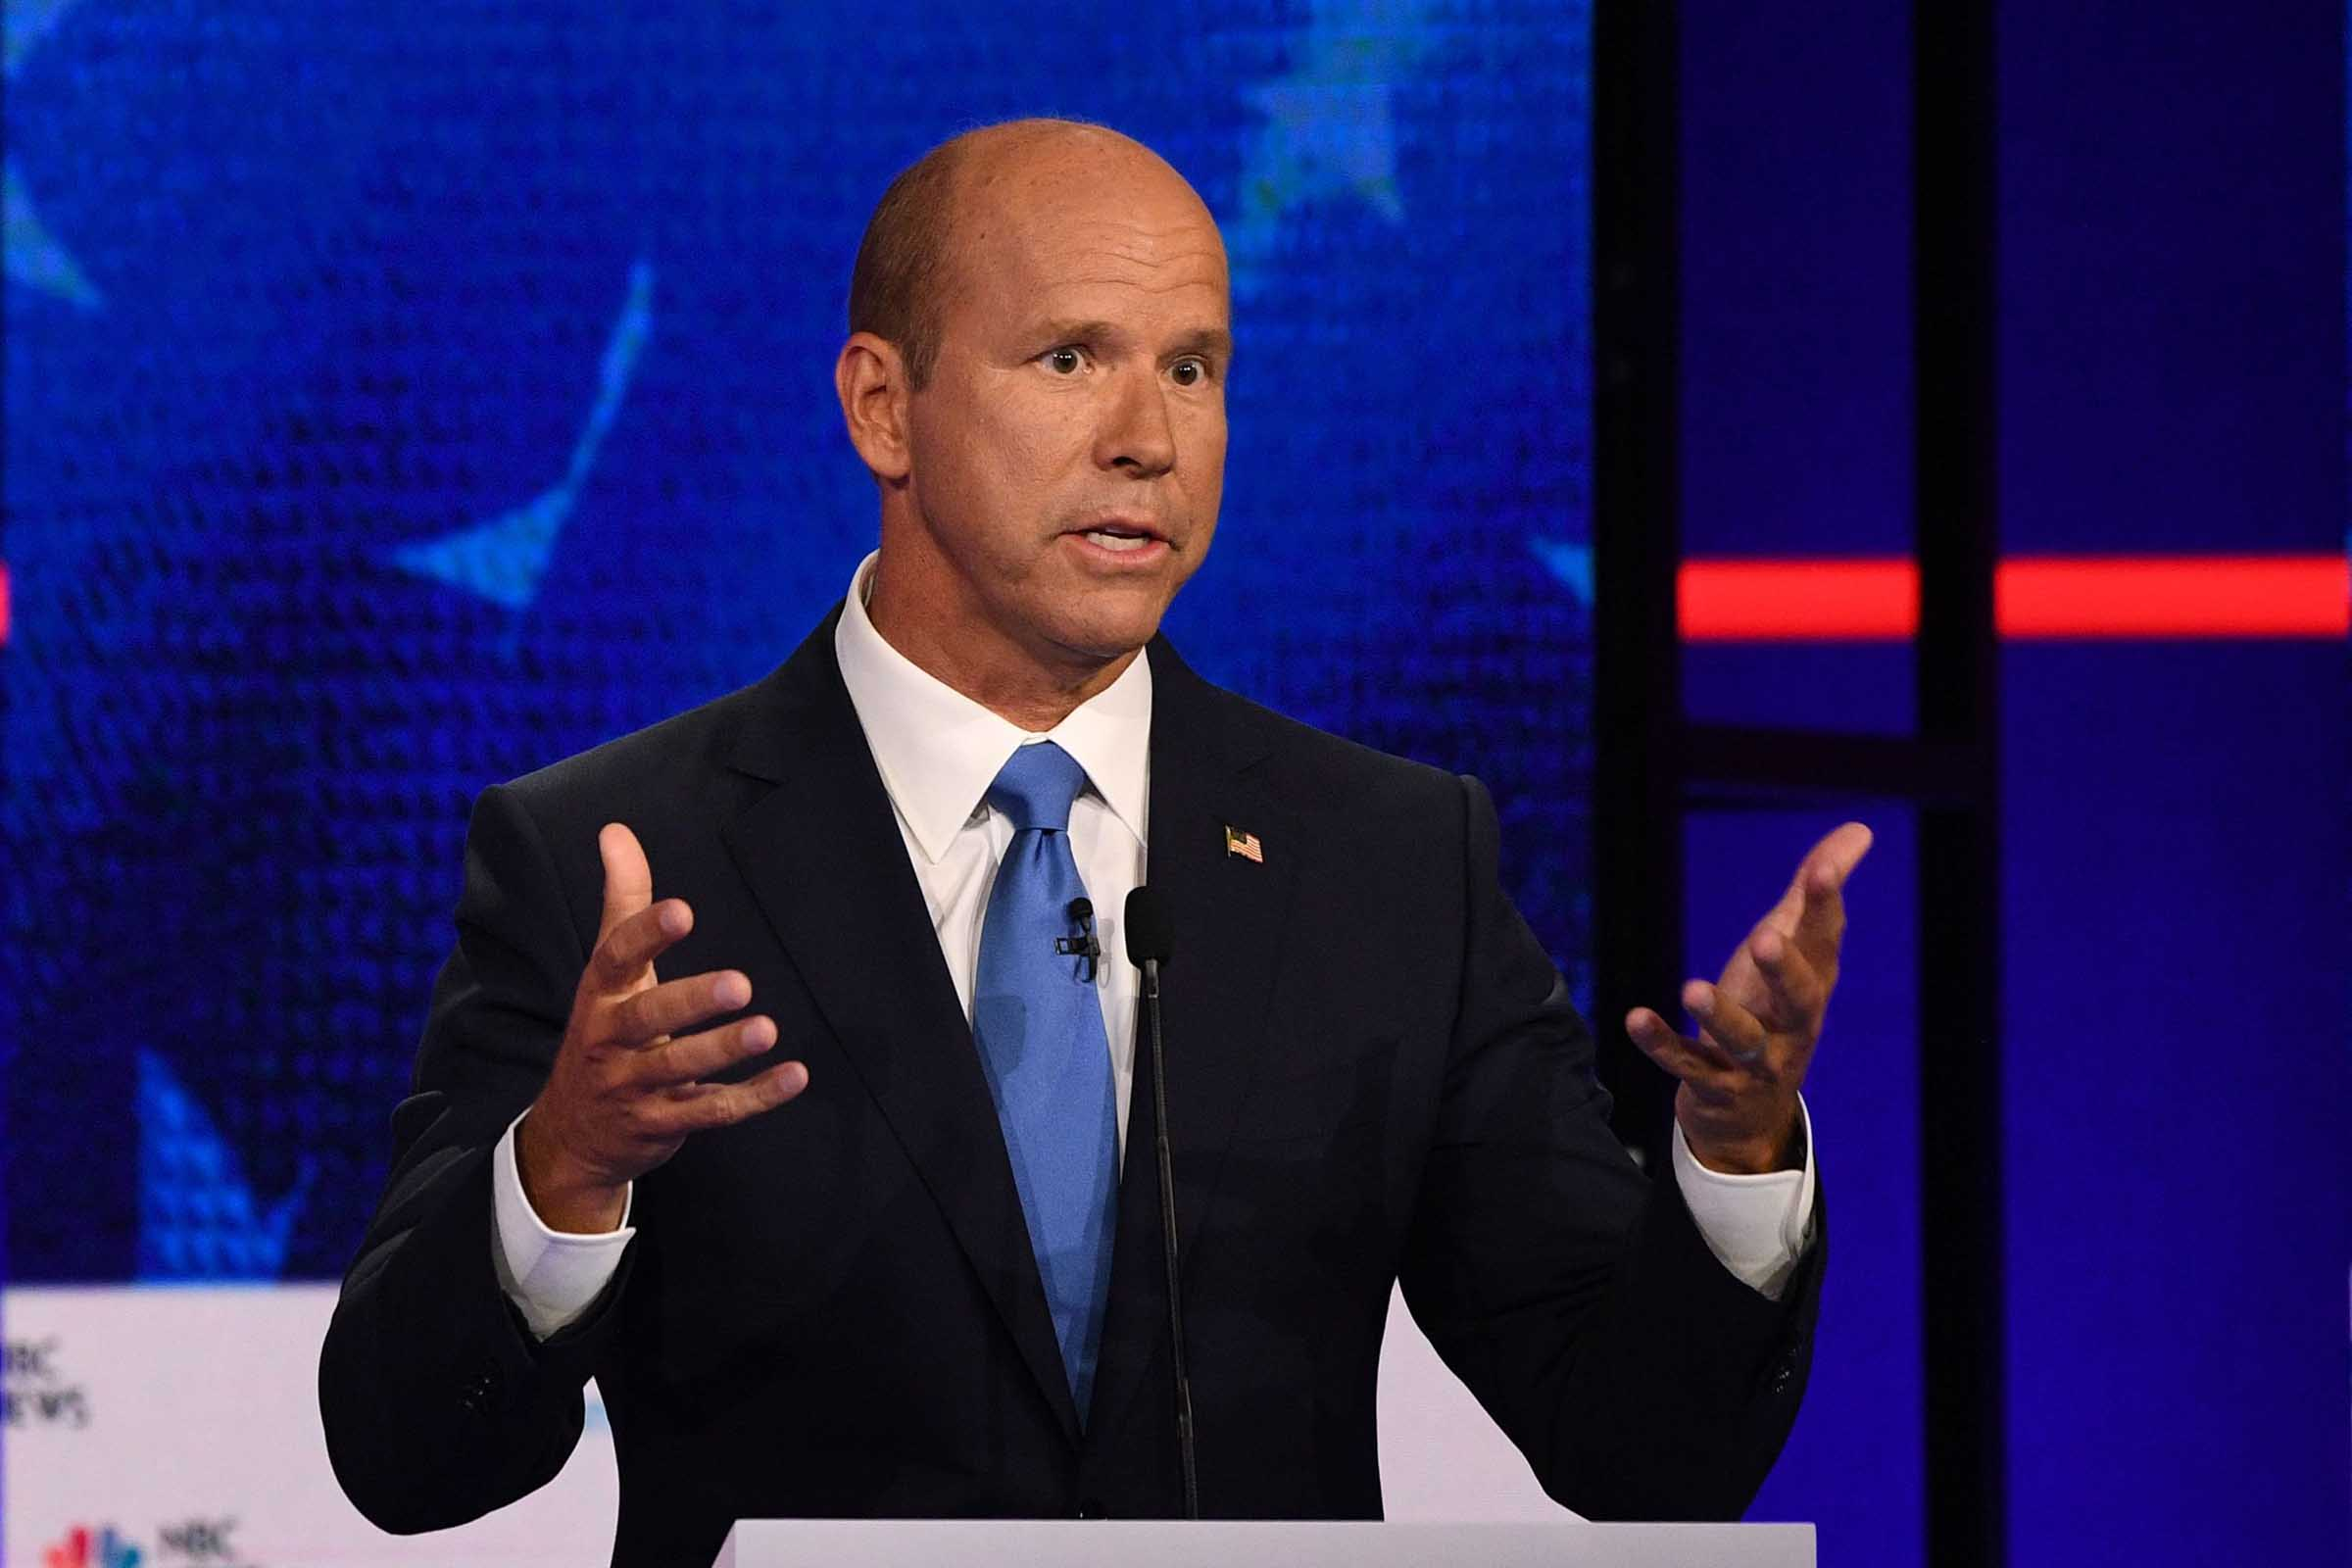 Democratic presidential hopeful former US Representative for Maryland's 6th congressional district John Delaney gestures as he speaks during the first Democratic primary debate of the 2020 presidential campaign season hosted by NBC News at the Adrienne Arsht Center for the Performing Arts in Miami, Florida, June 26, 2019.